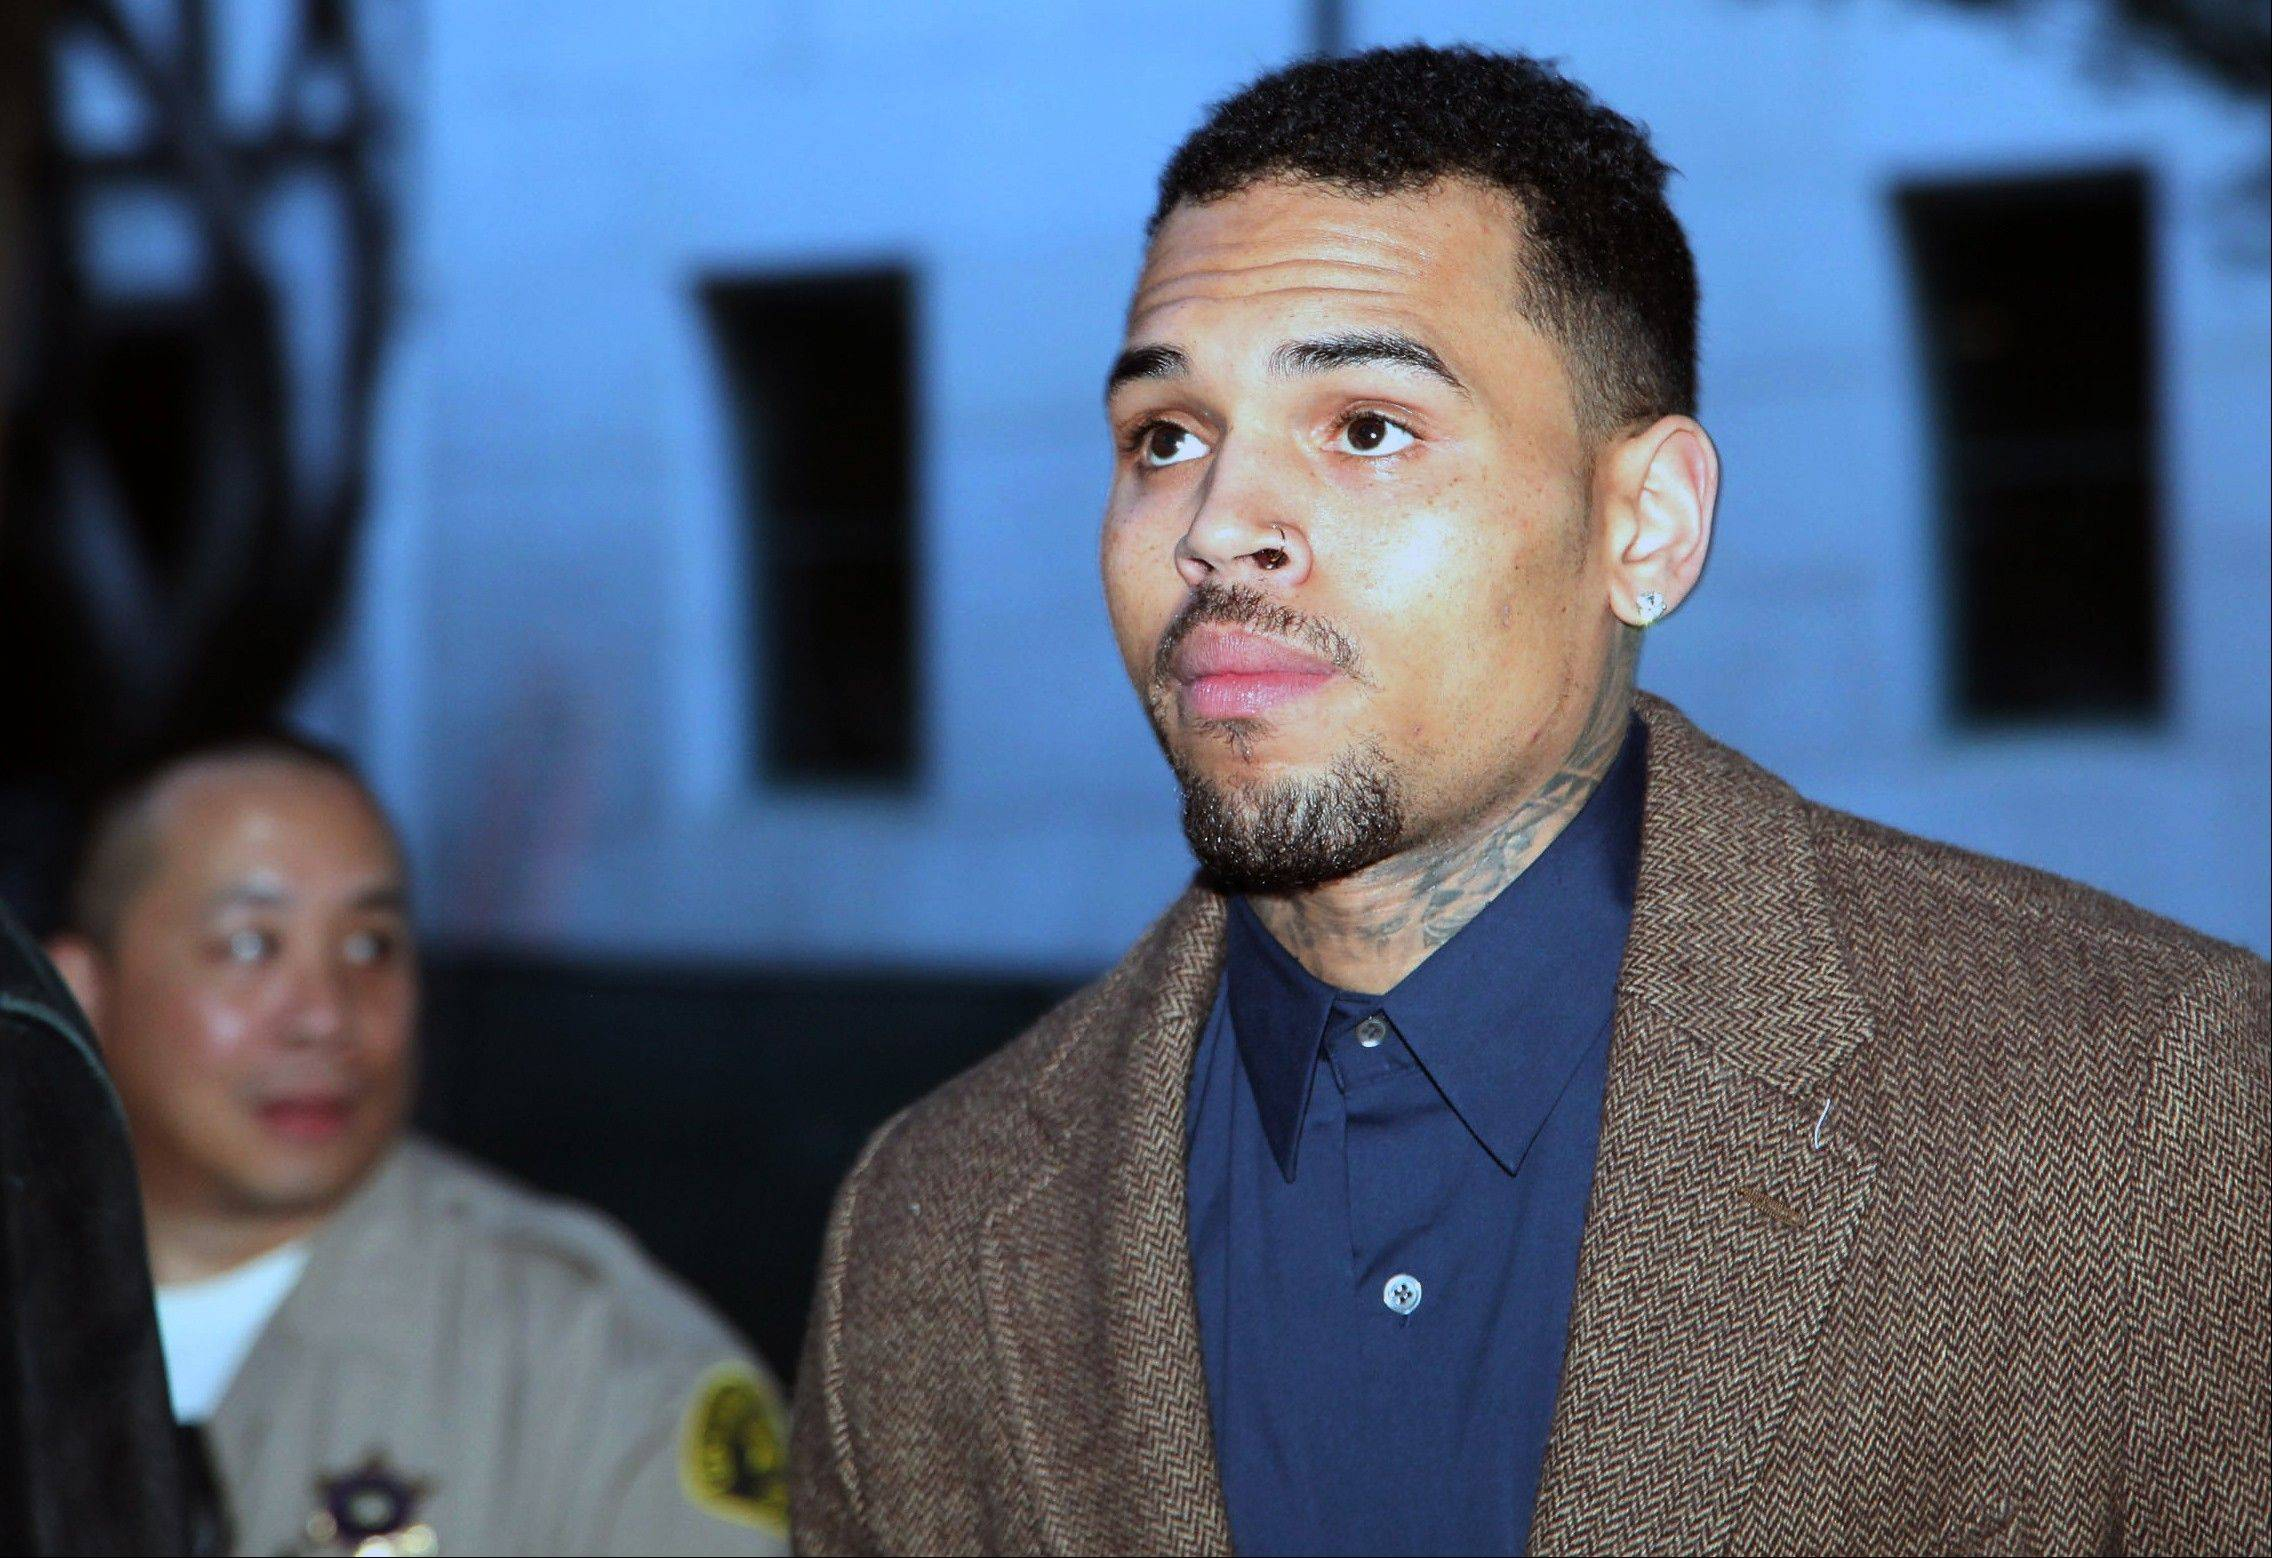 R&B singer Chris Brown arrives at a Los Angeles Superior Court for a probation review hearing on Monday. The judge rejected a prosecutor�s request during the hearing to have Brown sent to jail over the misdemeanor assault case filed last year in Washington, D.C.